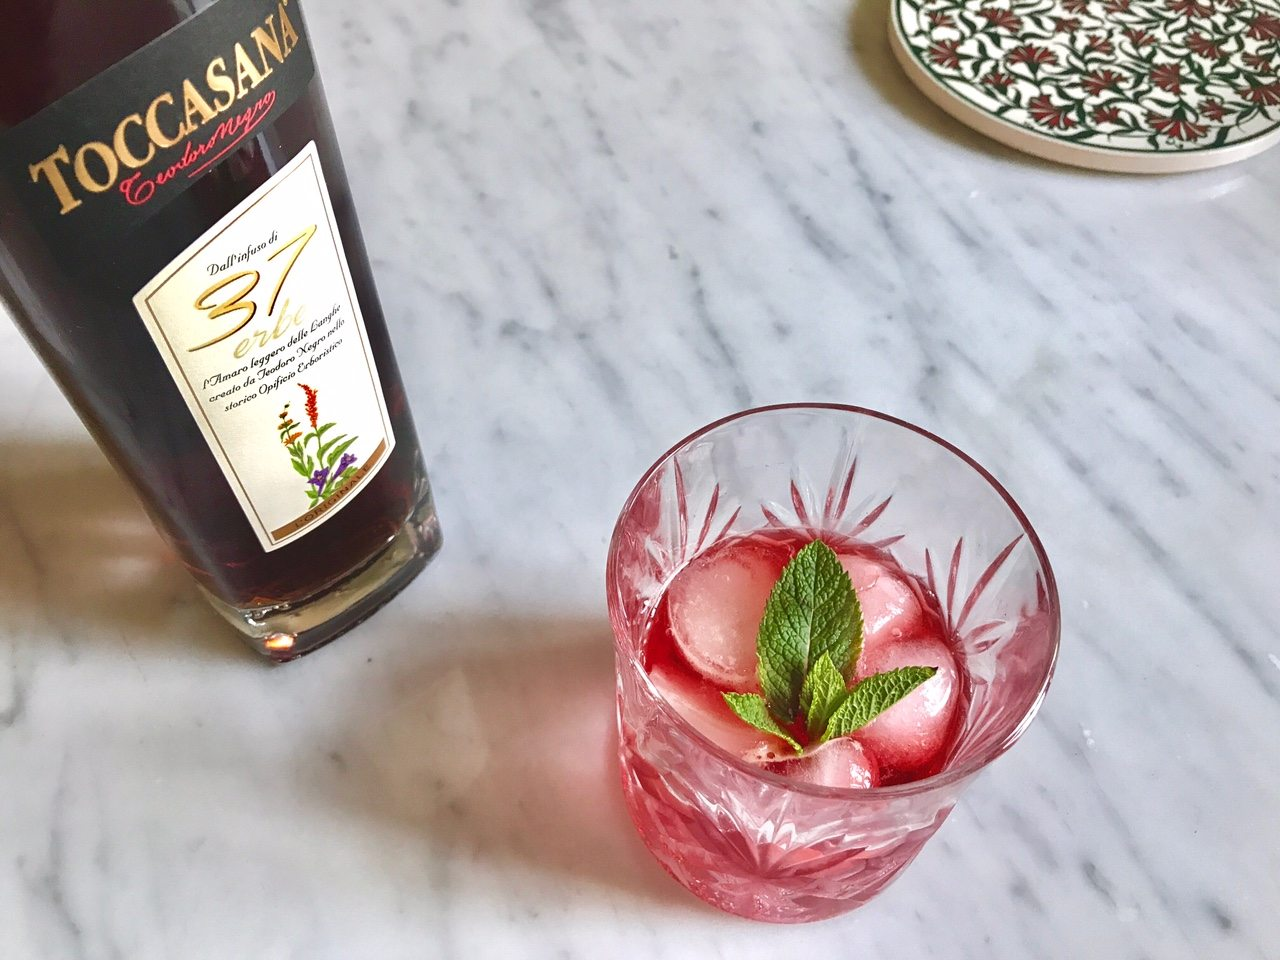 amaro toccasana cocktail spadelliamo